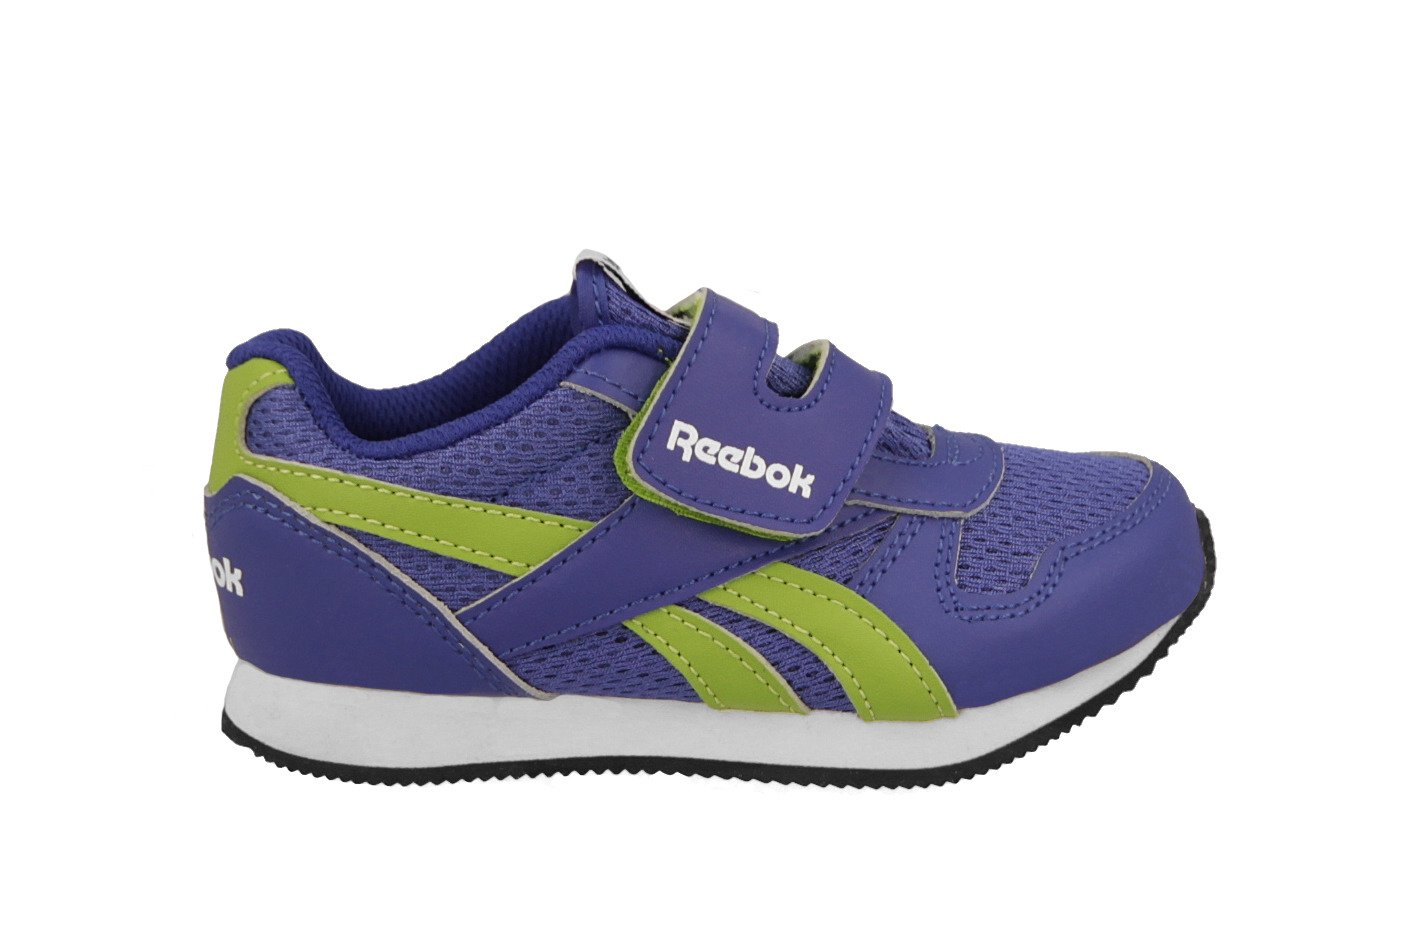 https://yessport.pl/pol_pl_BUTY-REEBOK-ROYAL-CLJOGGER-KC-M47234-7592_1.jpg